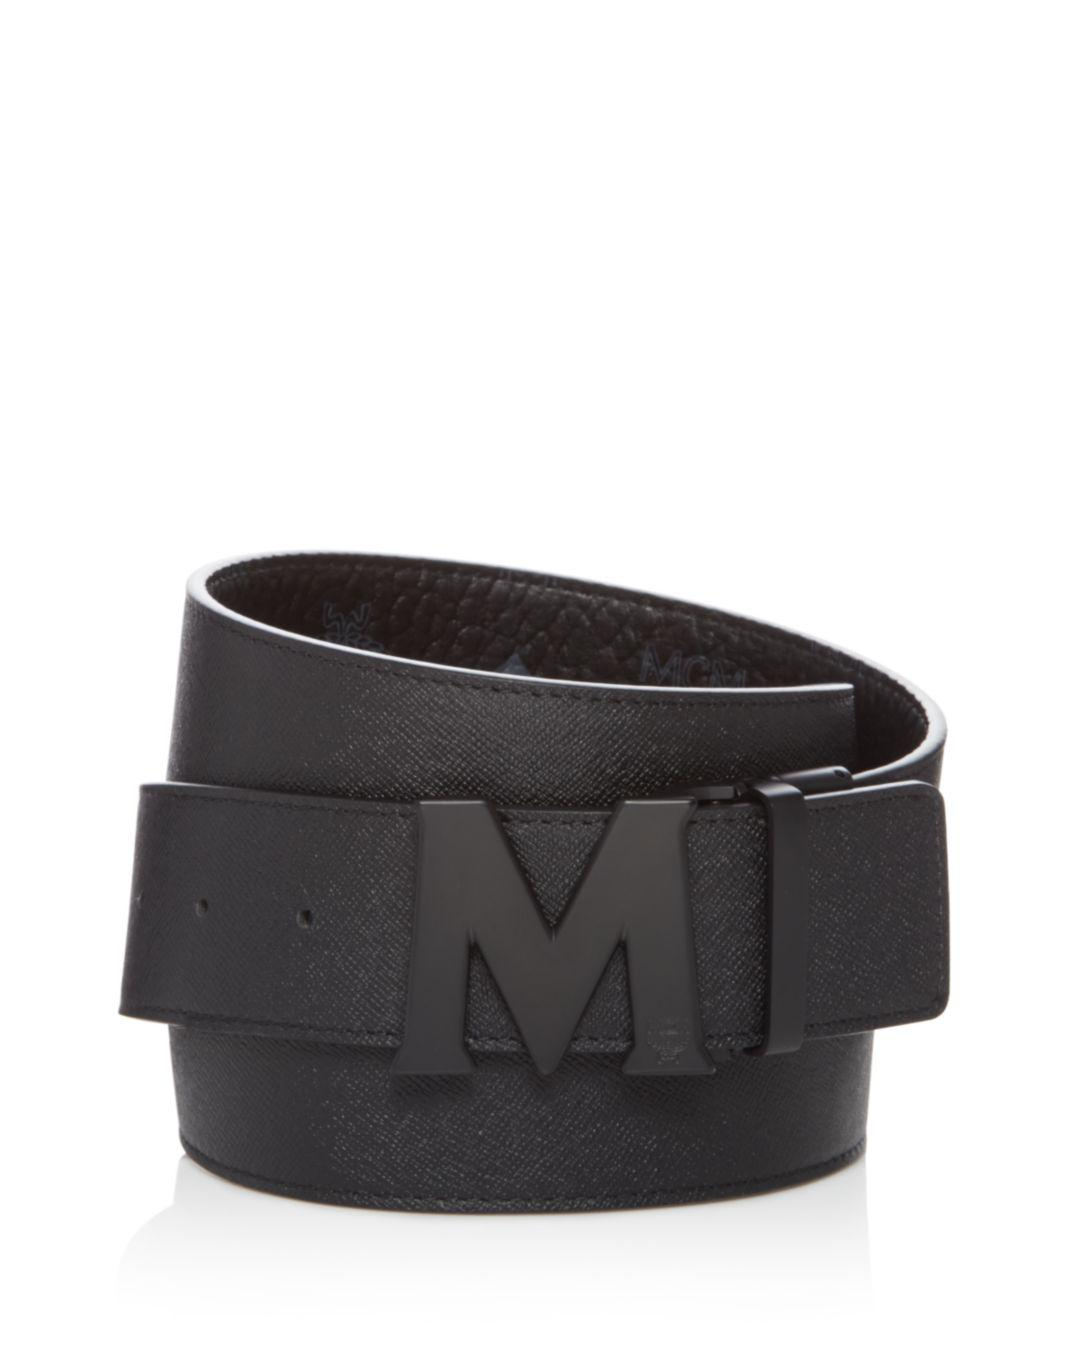 4e1a88201a MCM Reversible Signature Belt in Black for Men - Save 7% - Lyst